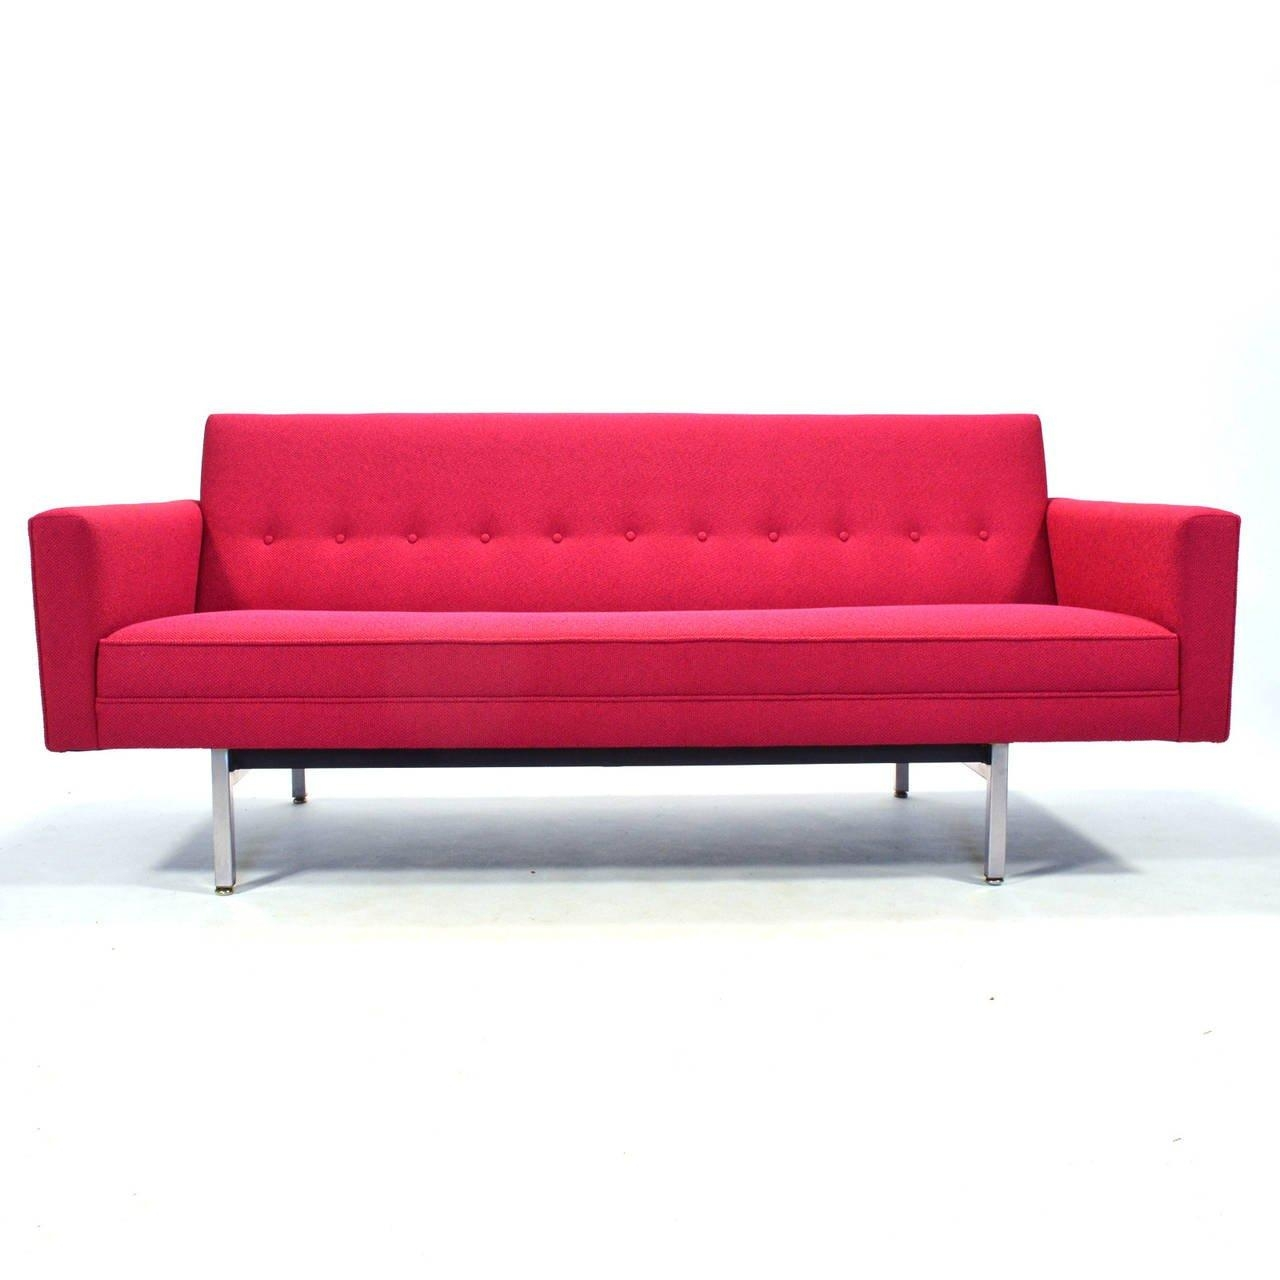 George Nelson Modular Group Sofa For Sale At 1Stdibs With George Nelson Sofas (Image 5 of 20)